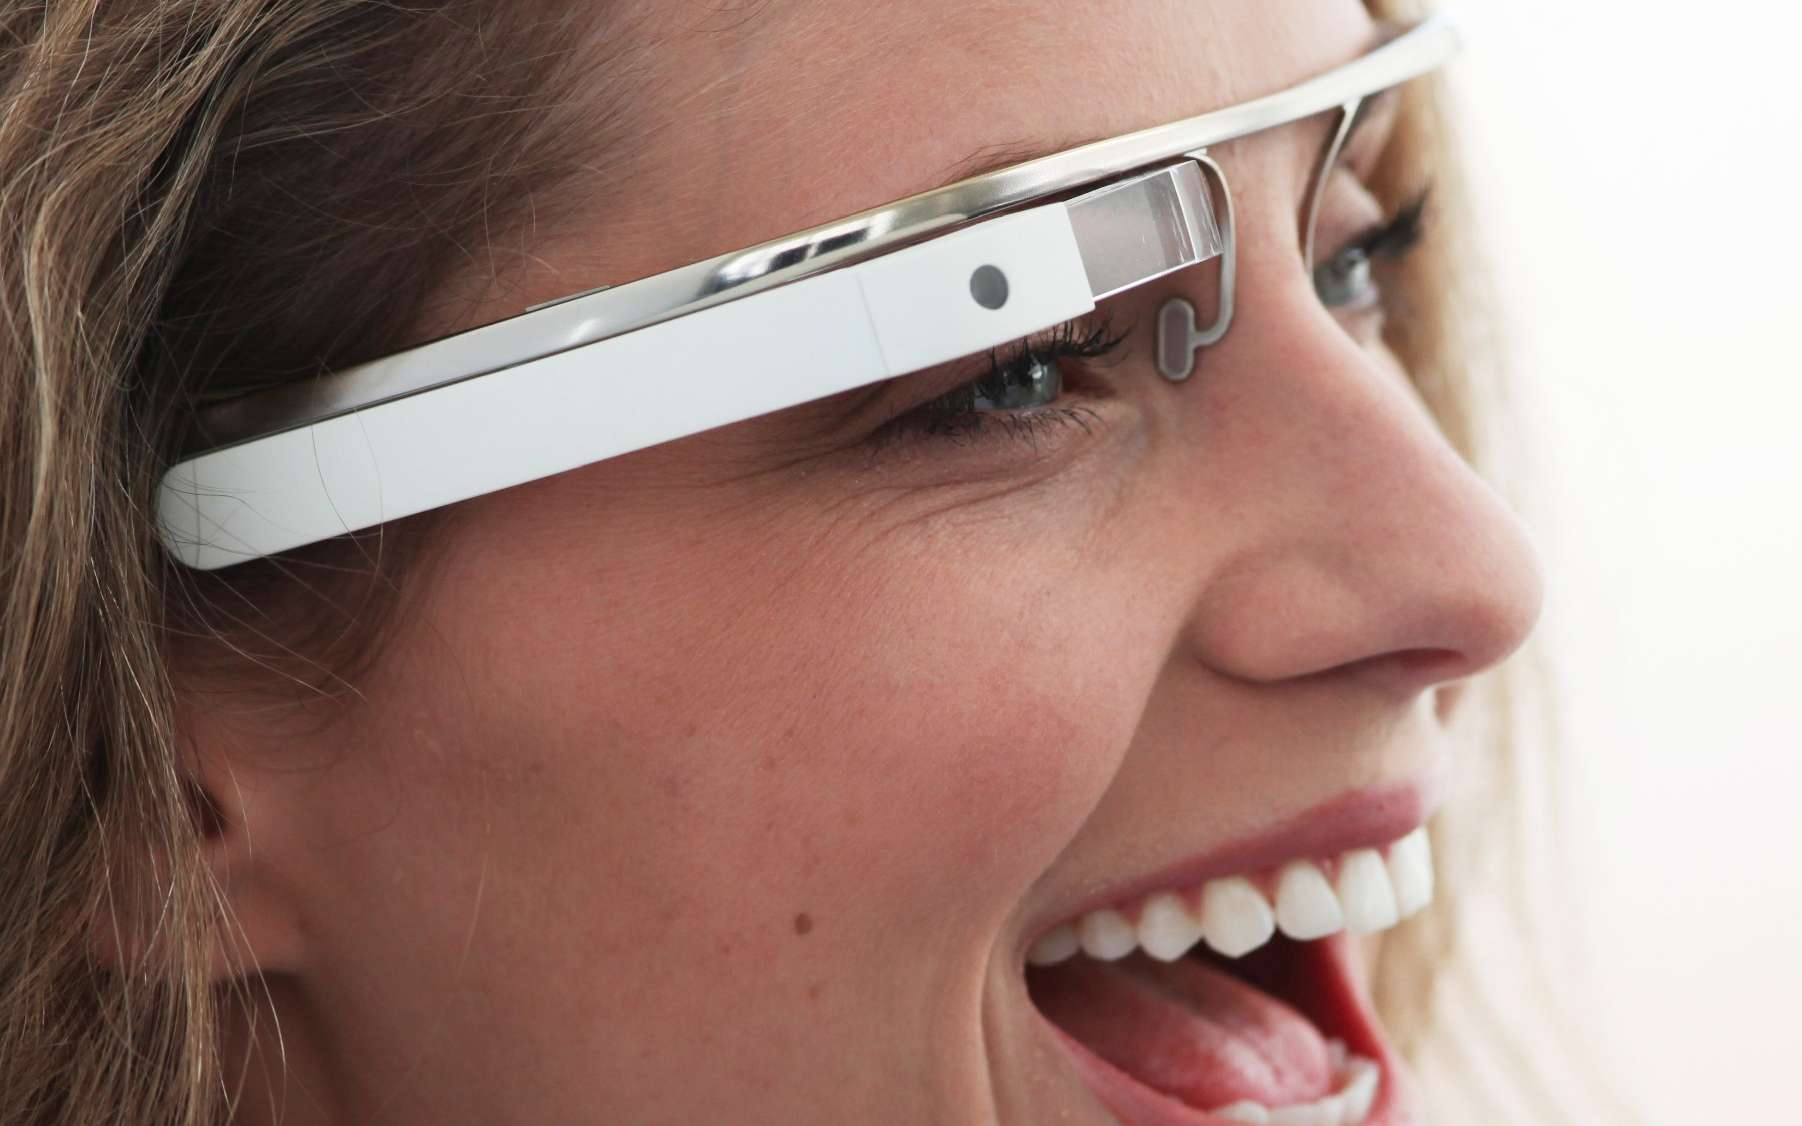 Les Google Glass, prototypes au même titre que l'iWatch (la montre connectée d'Apple), préfigurent-elles l'usage futur de la connexion à Internet ? © Google, Project Glass